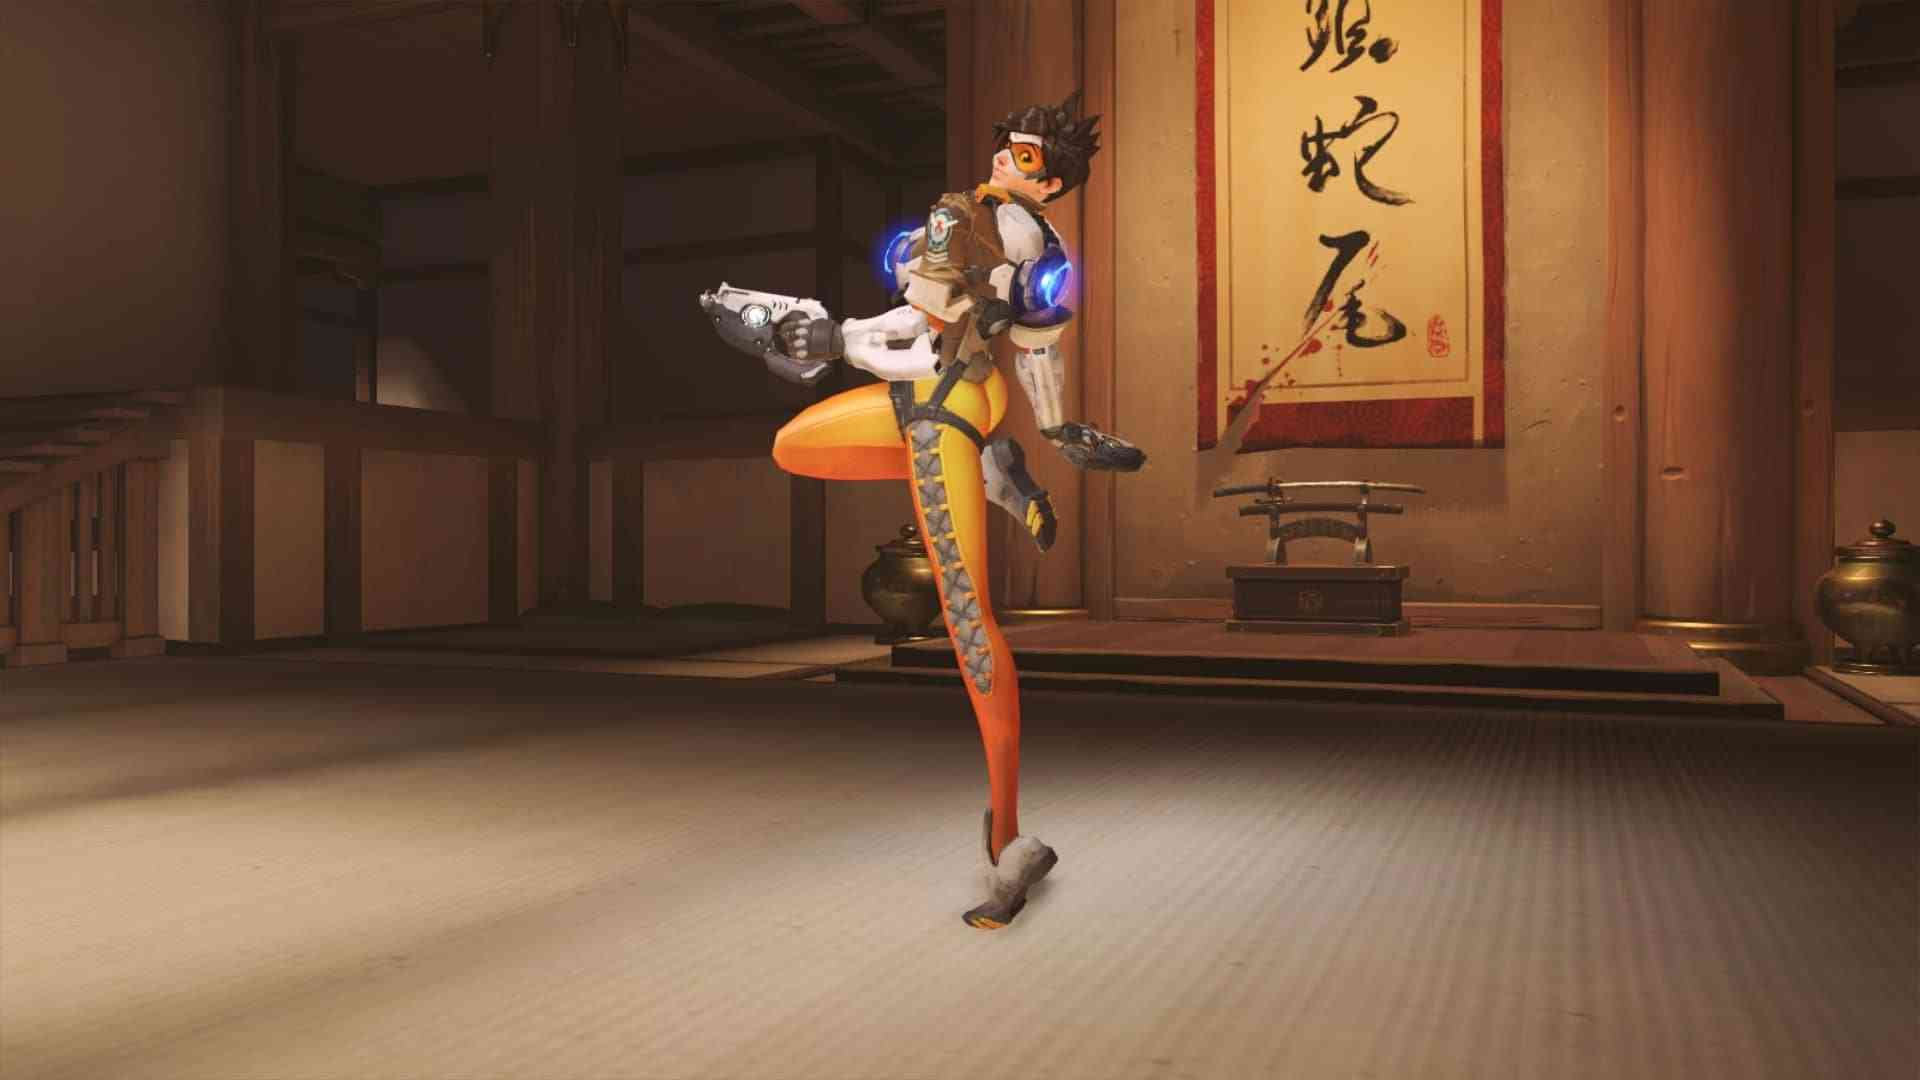 New Overwatch Patch Adds Tracer Pose, Skins & Bug Fixes